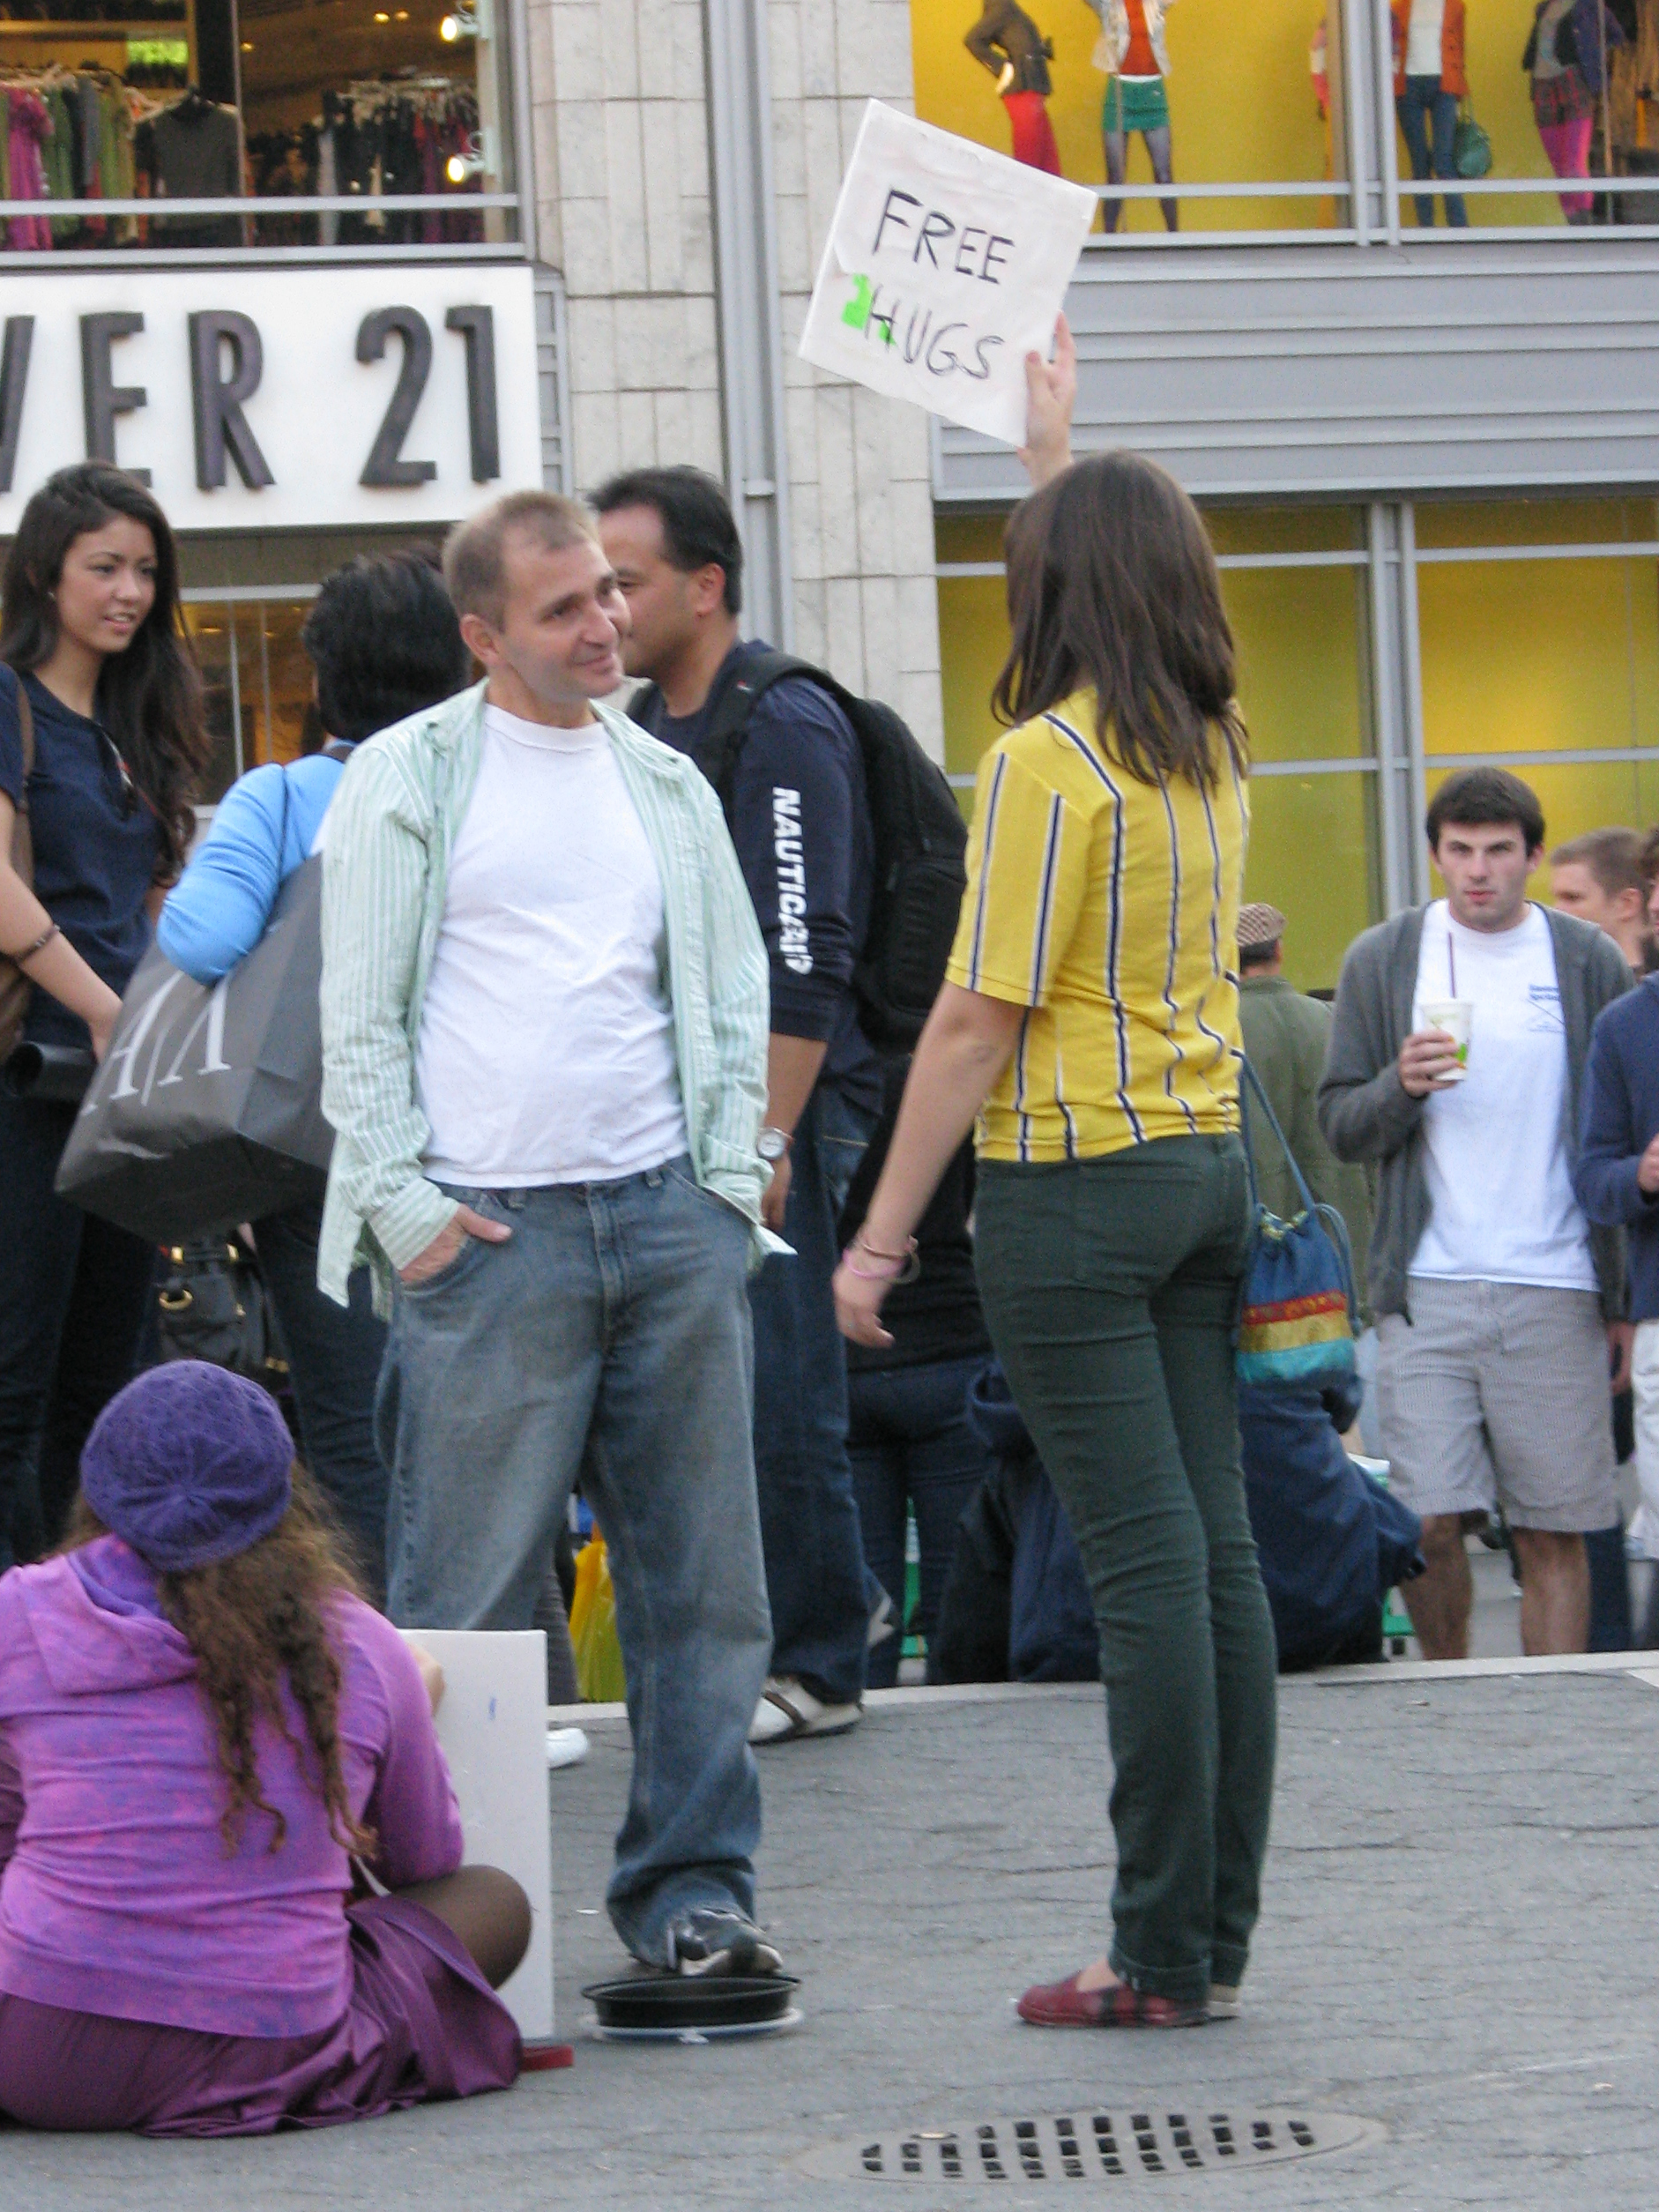 free hugs girl talking to man